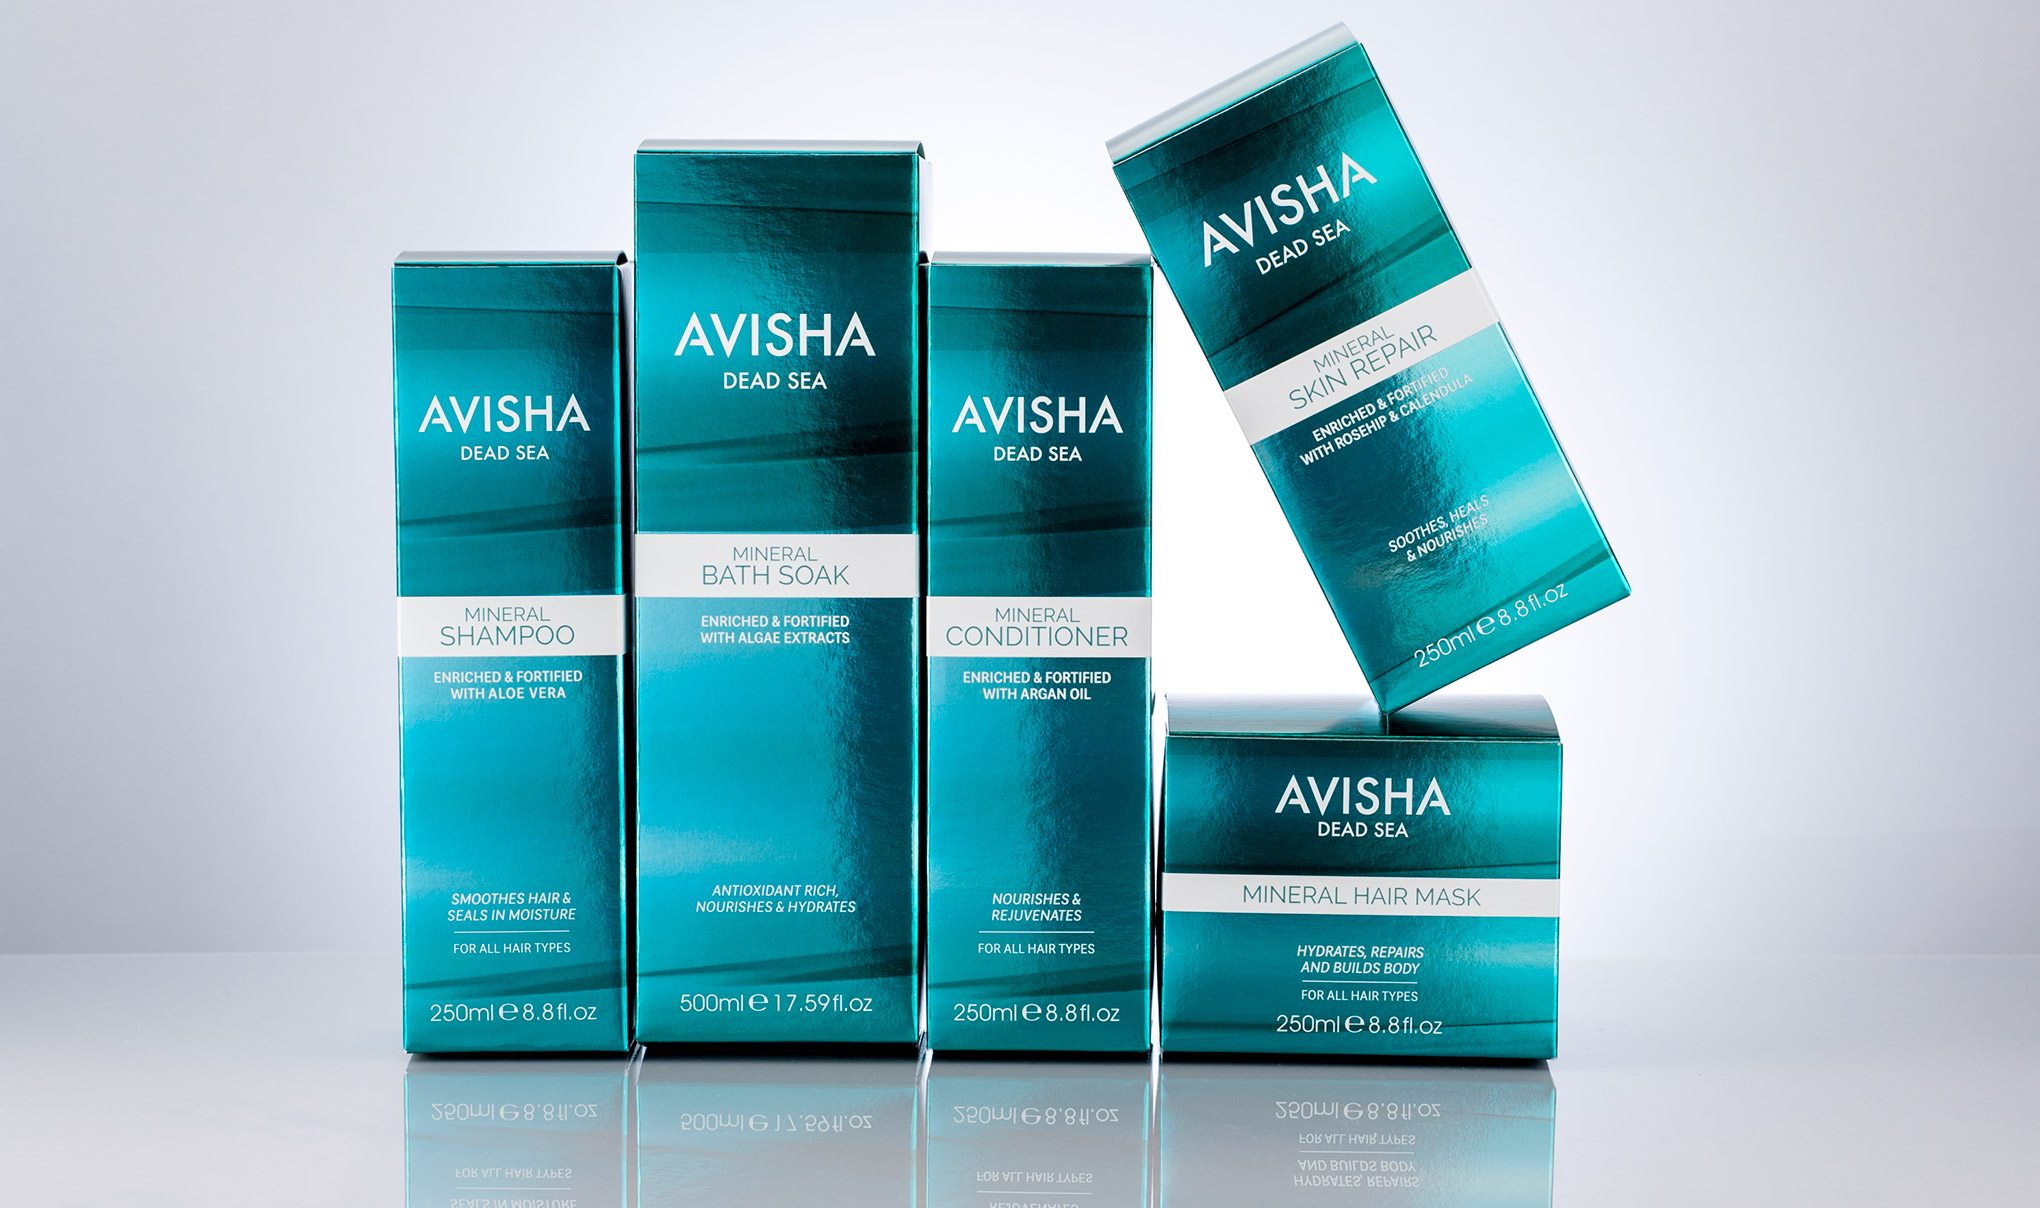 Creative Package Design For Avisha Dead Sea - Full Range line up